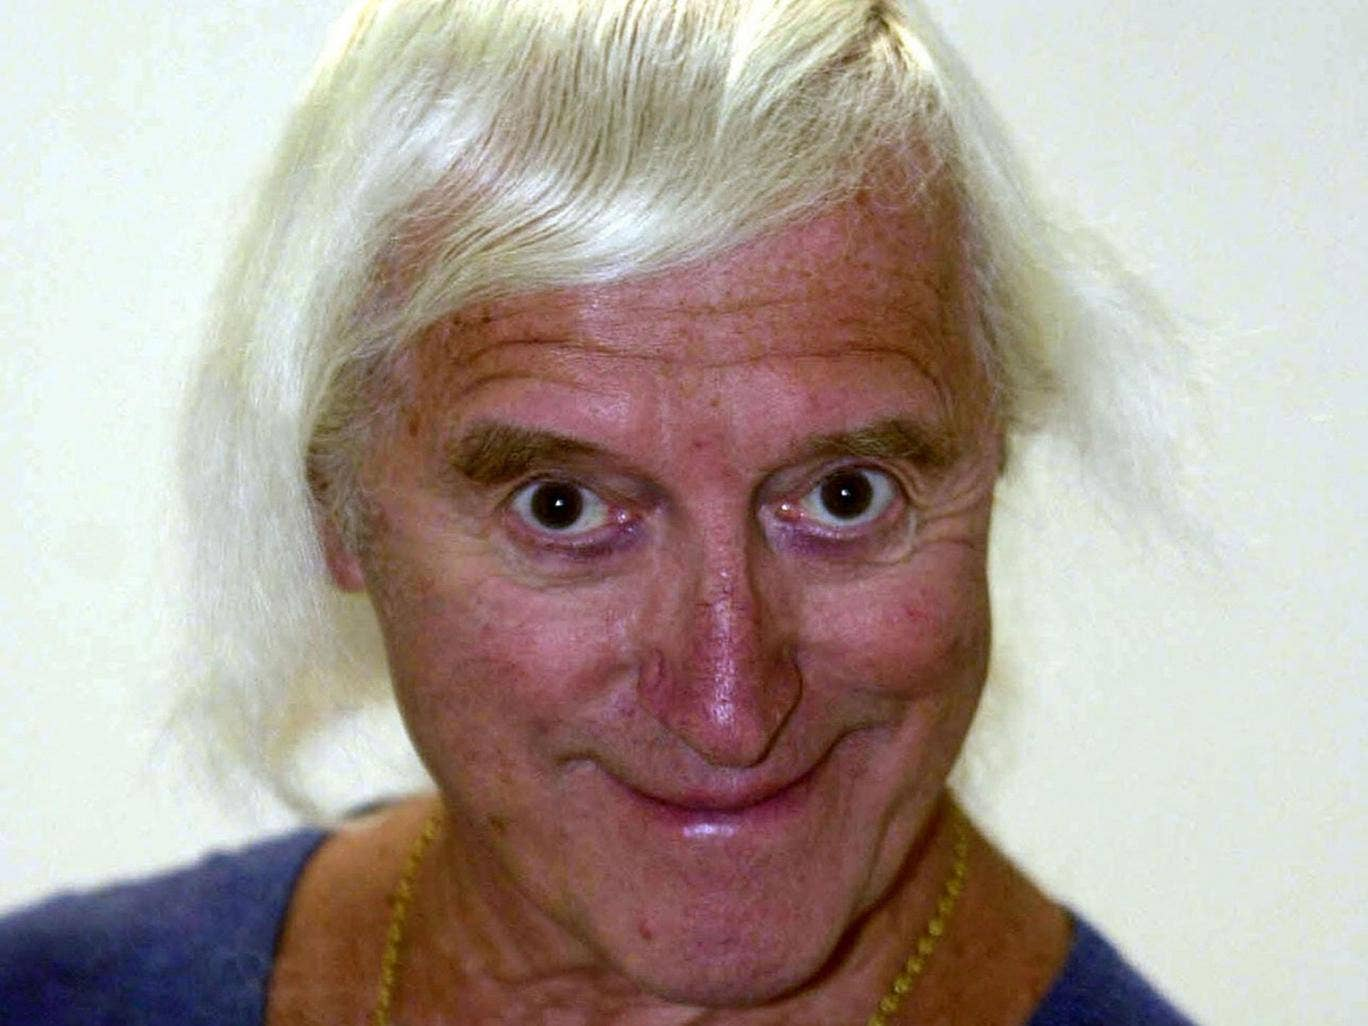 In March 2008, Sussex Police received a complaint that Savile had sexually assaulted a woman in her early 20s in a caravan in Sussex in about 1970.